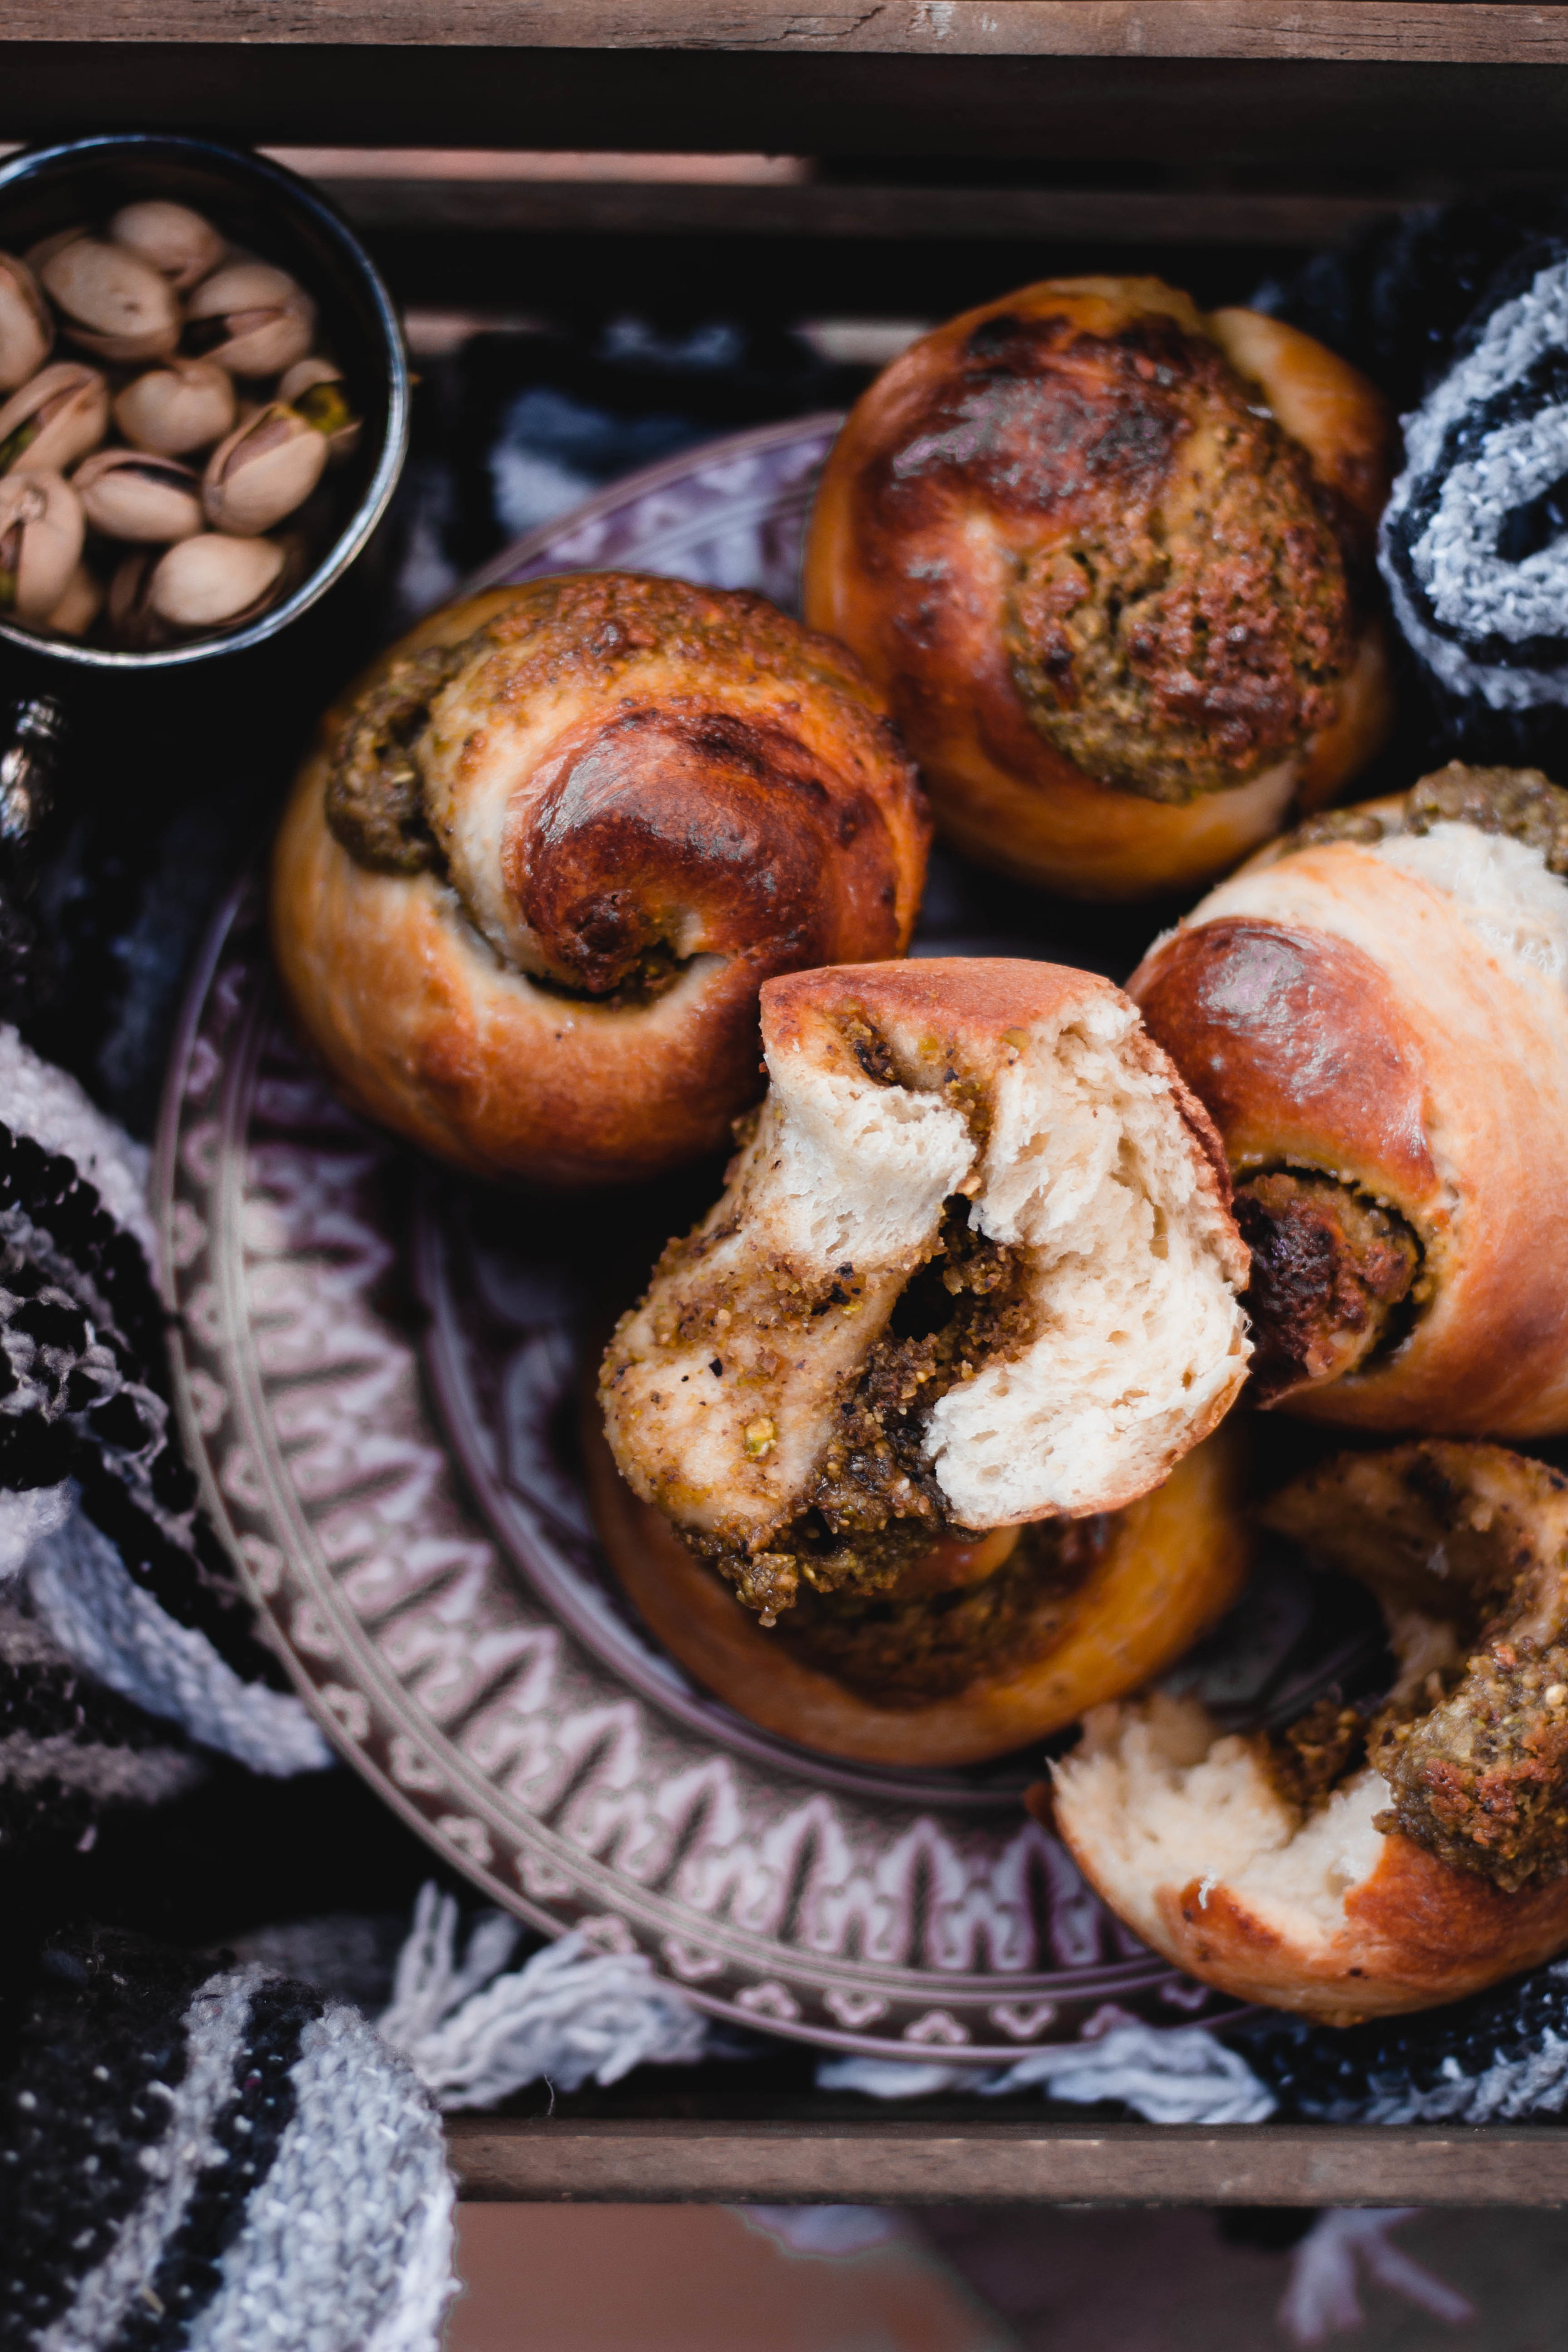 Brioche rolls with pistachio filling recipe | from scratch, mostly